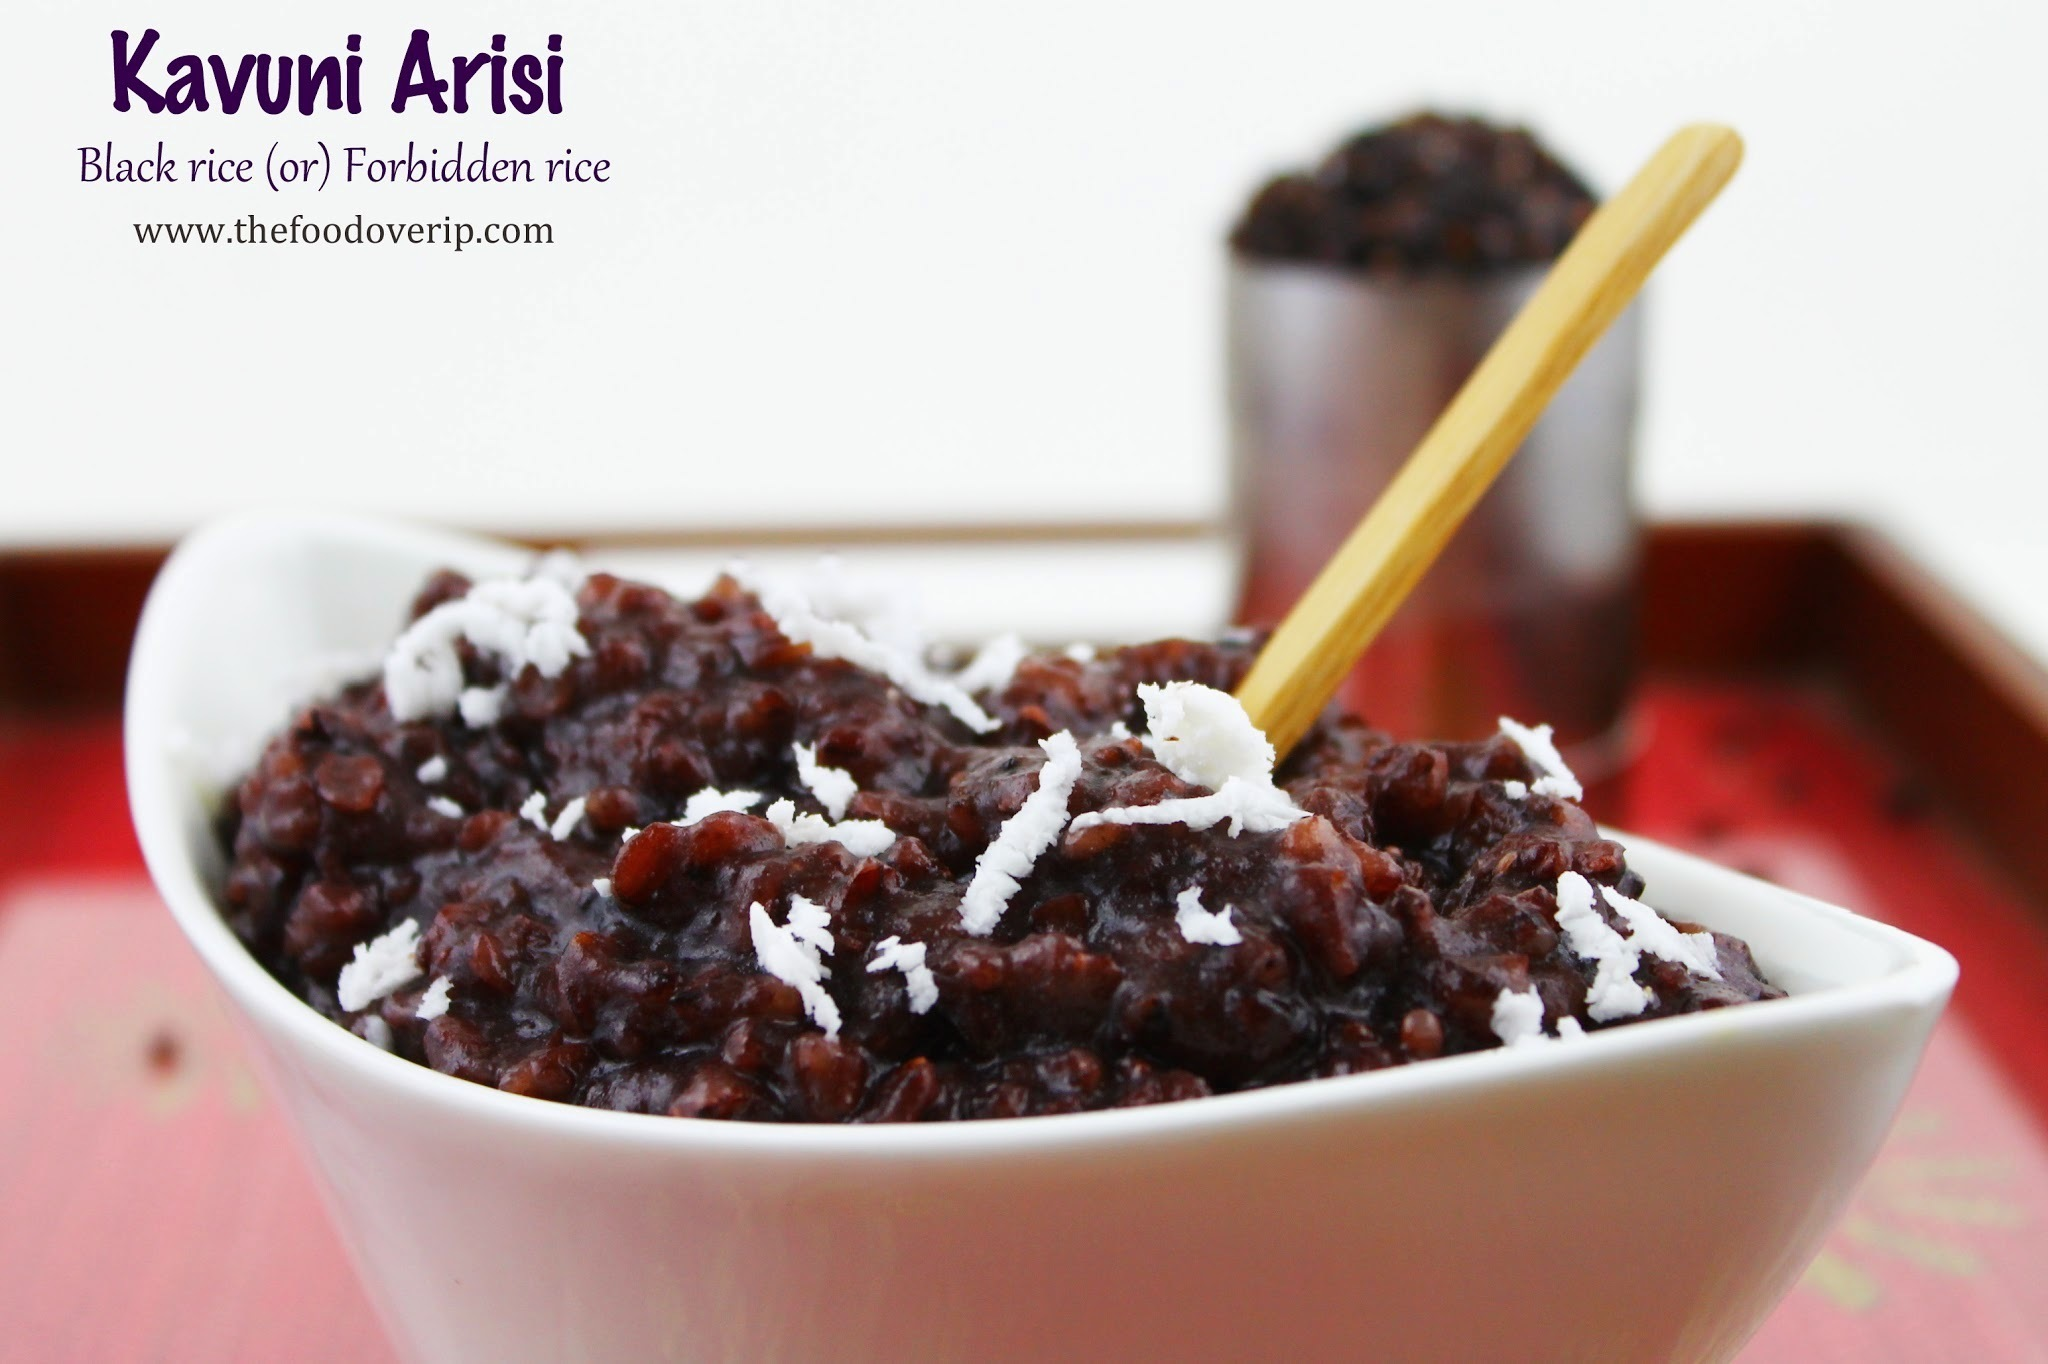 Chettinad Kavuni Arisi | Sticky Black Rice Pudding | Karthigai Deepam Special 2013